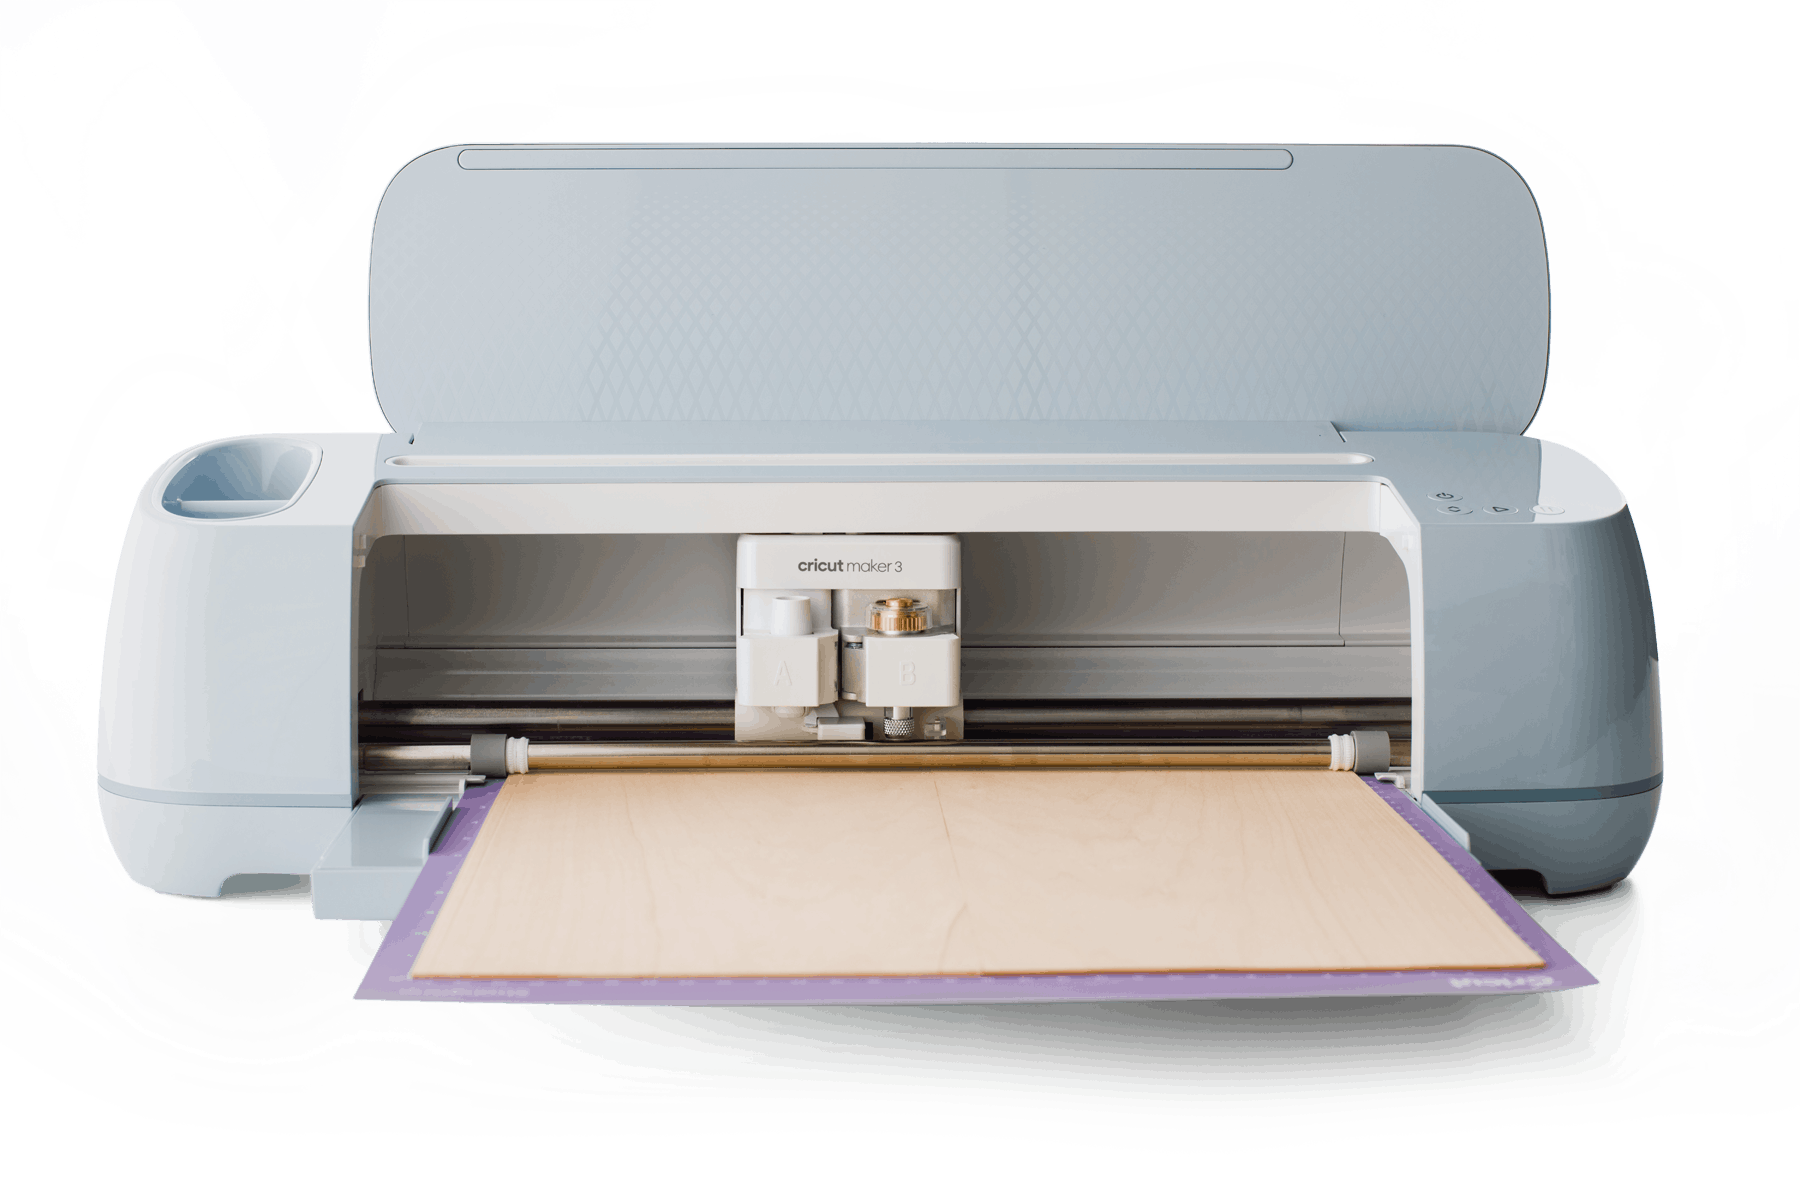 Cricut Maker 3 with basswood inserted on a cutting mat.